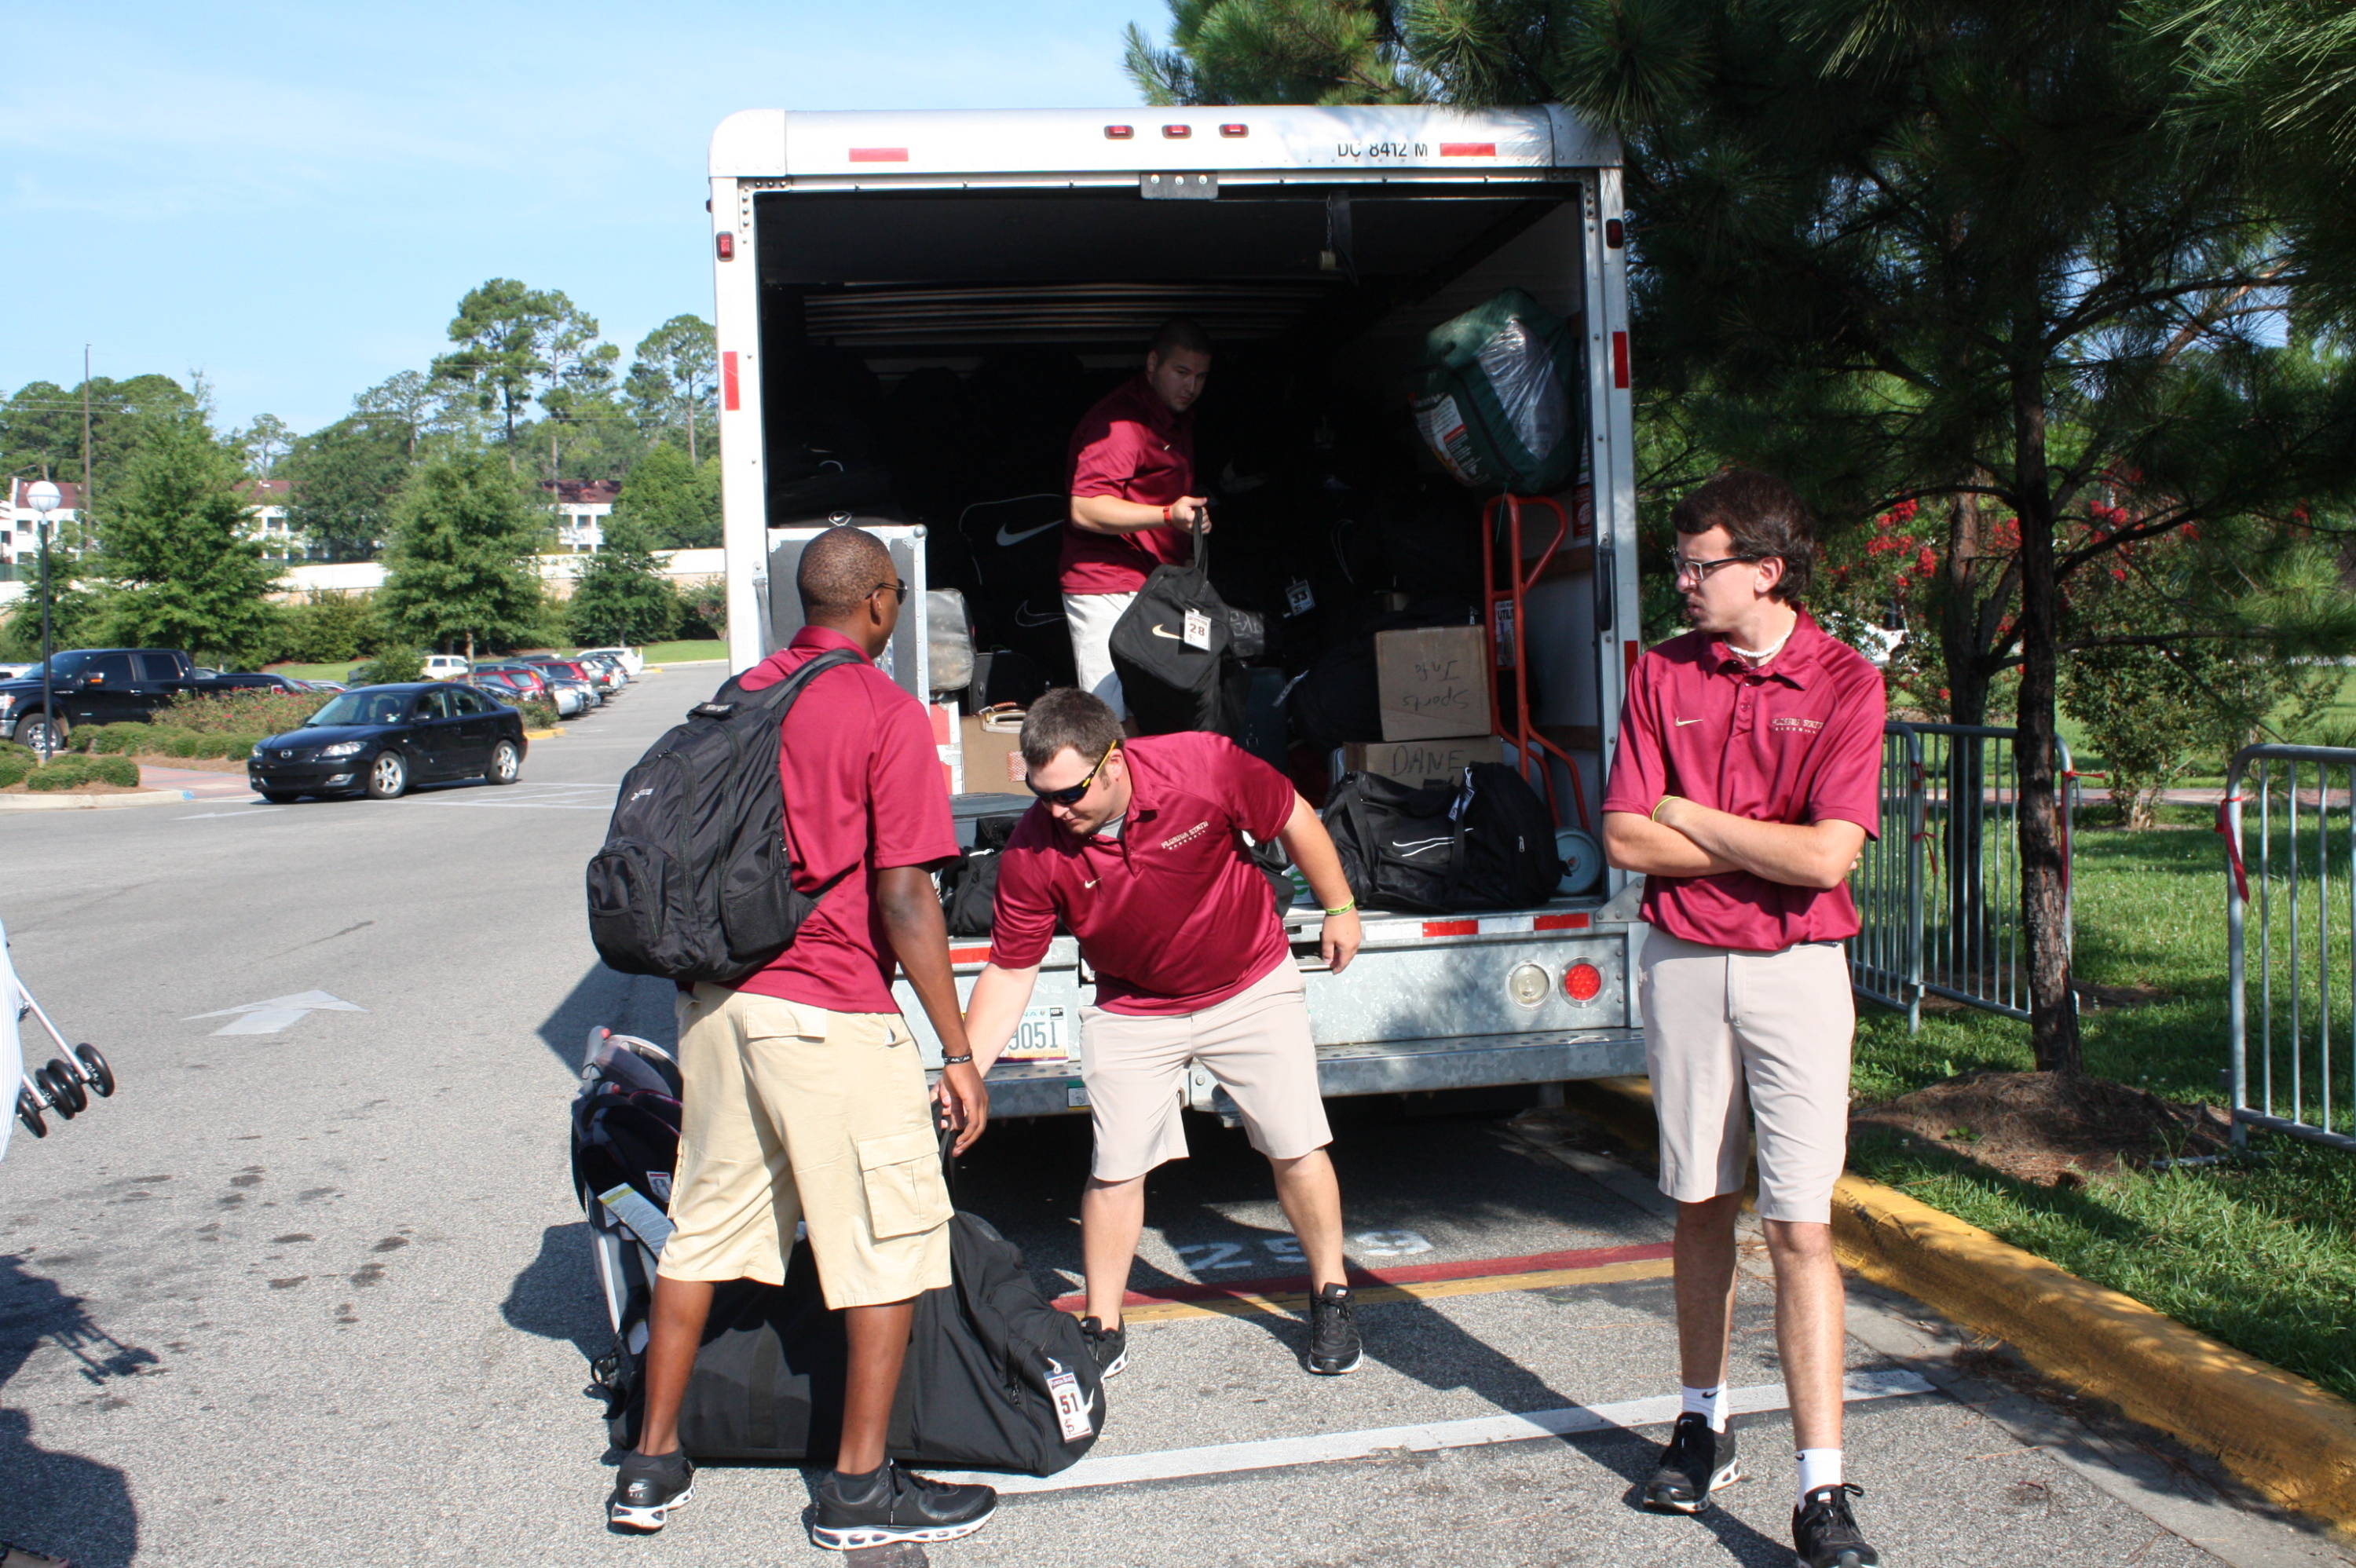 The baseball equipment staff loading the truck for the trip to Omaha.